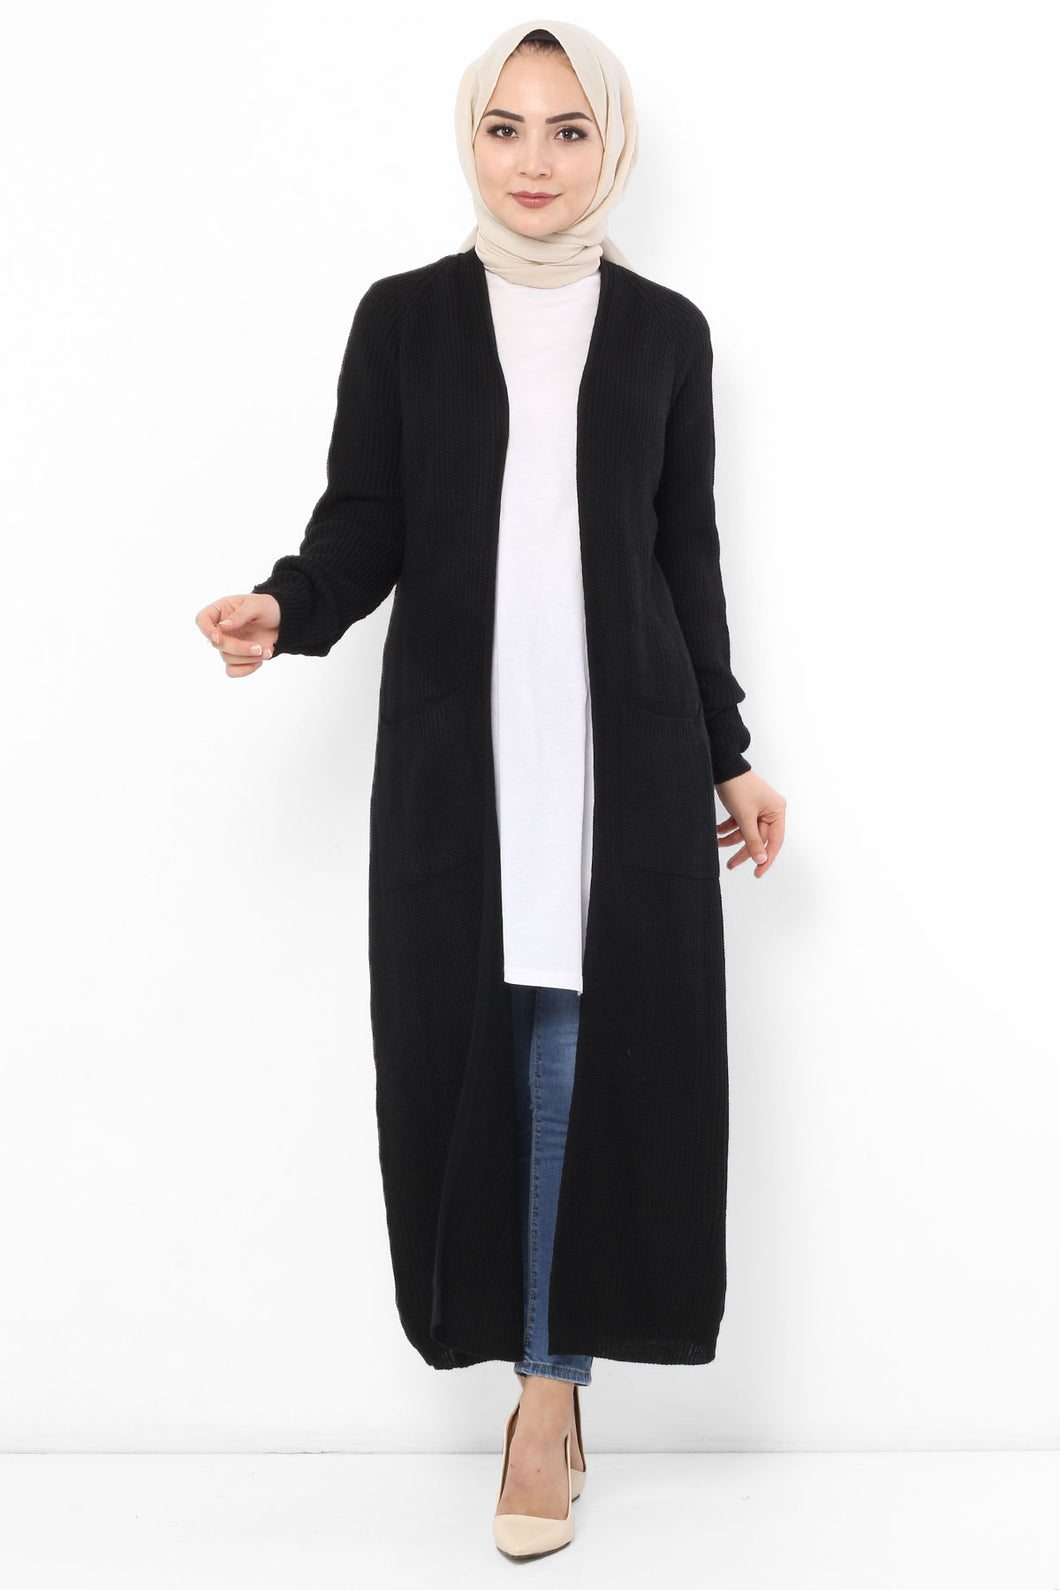 Women's Long Black Cardigan